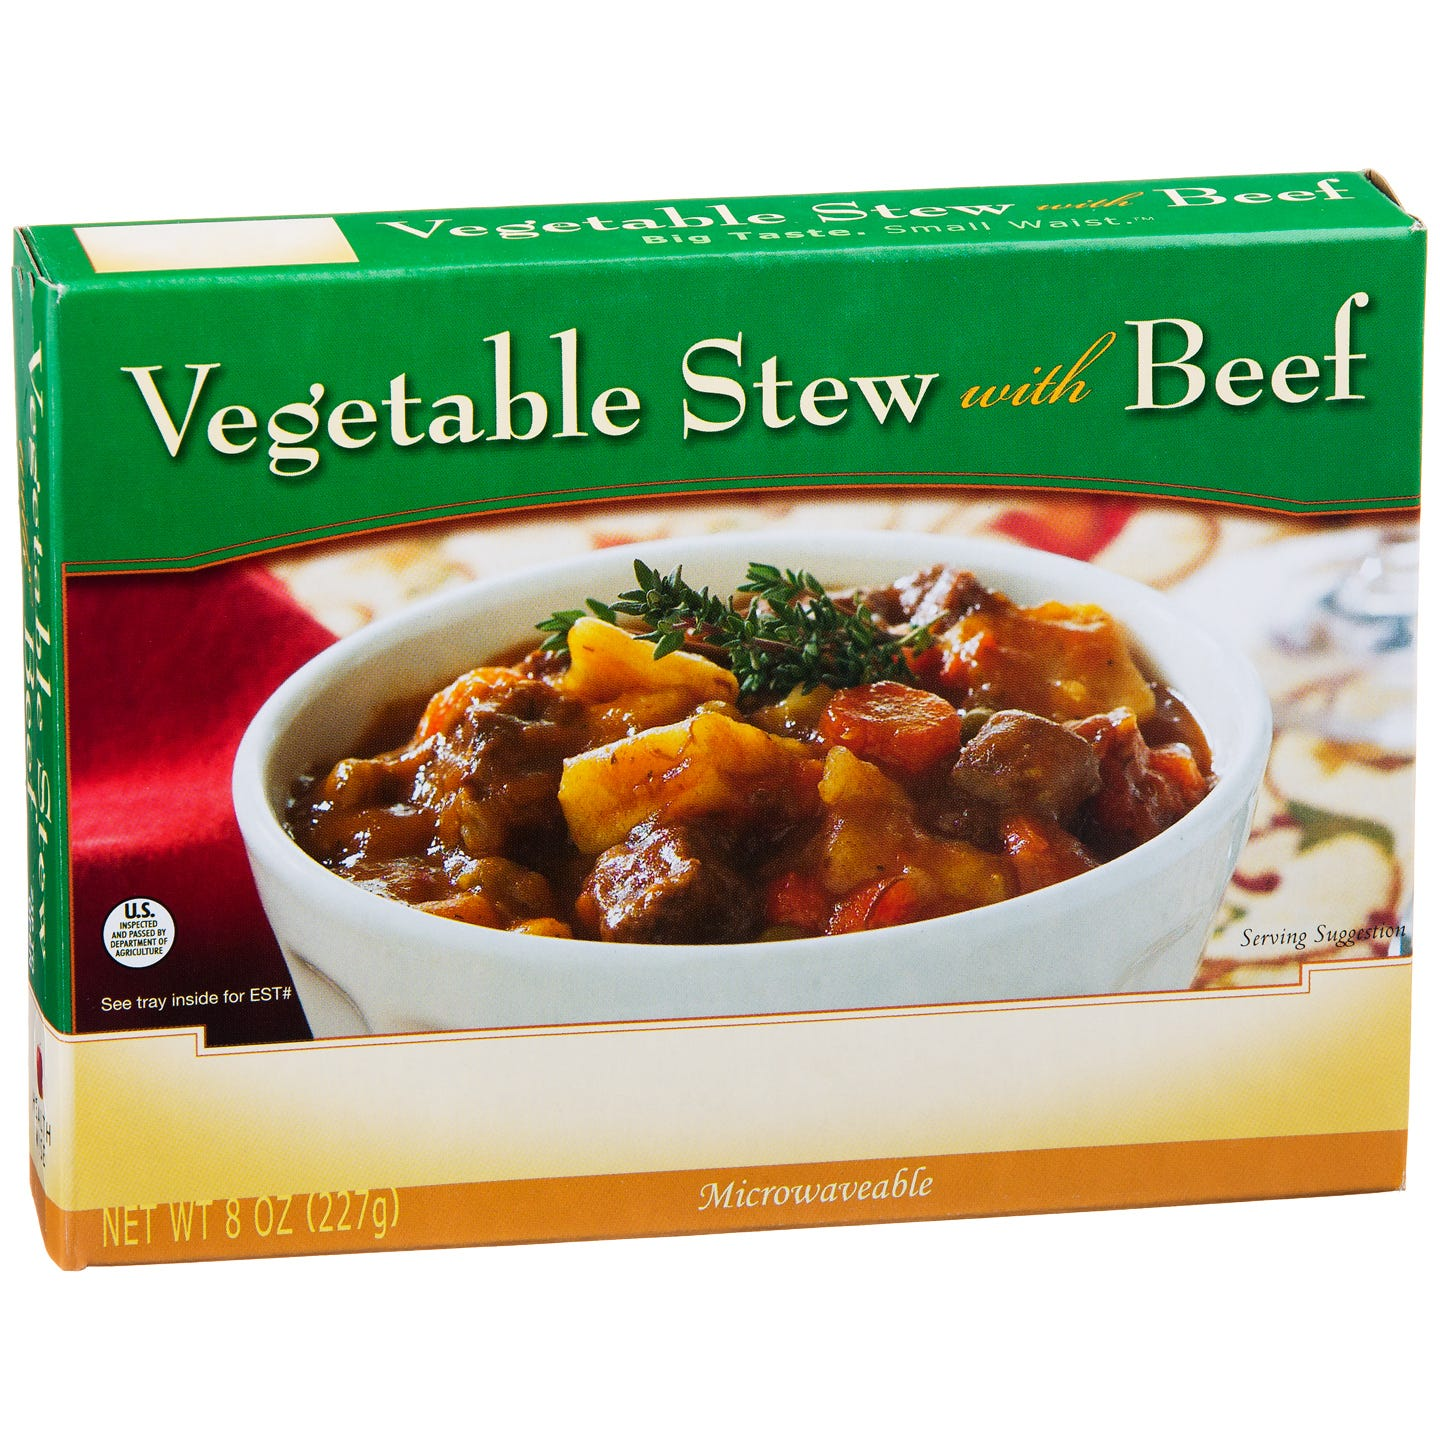 Low Calorie Meal Vegetable Stew with Beef 8 oz, BariWise - Rapid Diet Weight Loss Products Shop